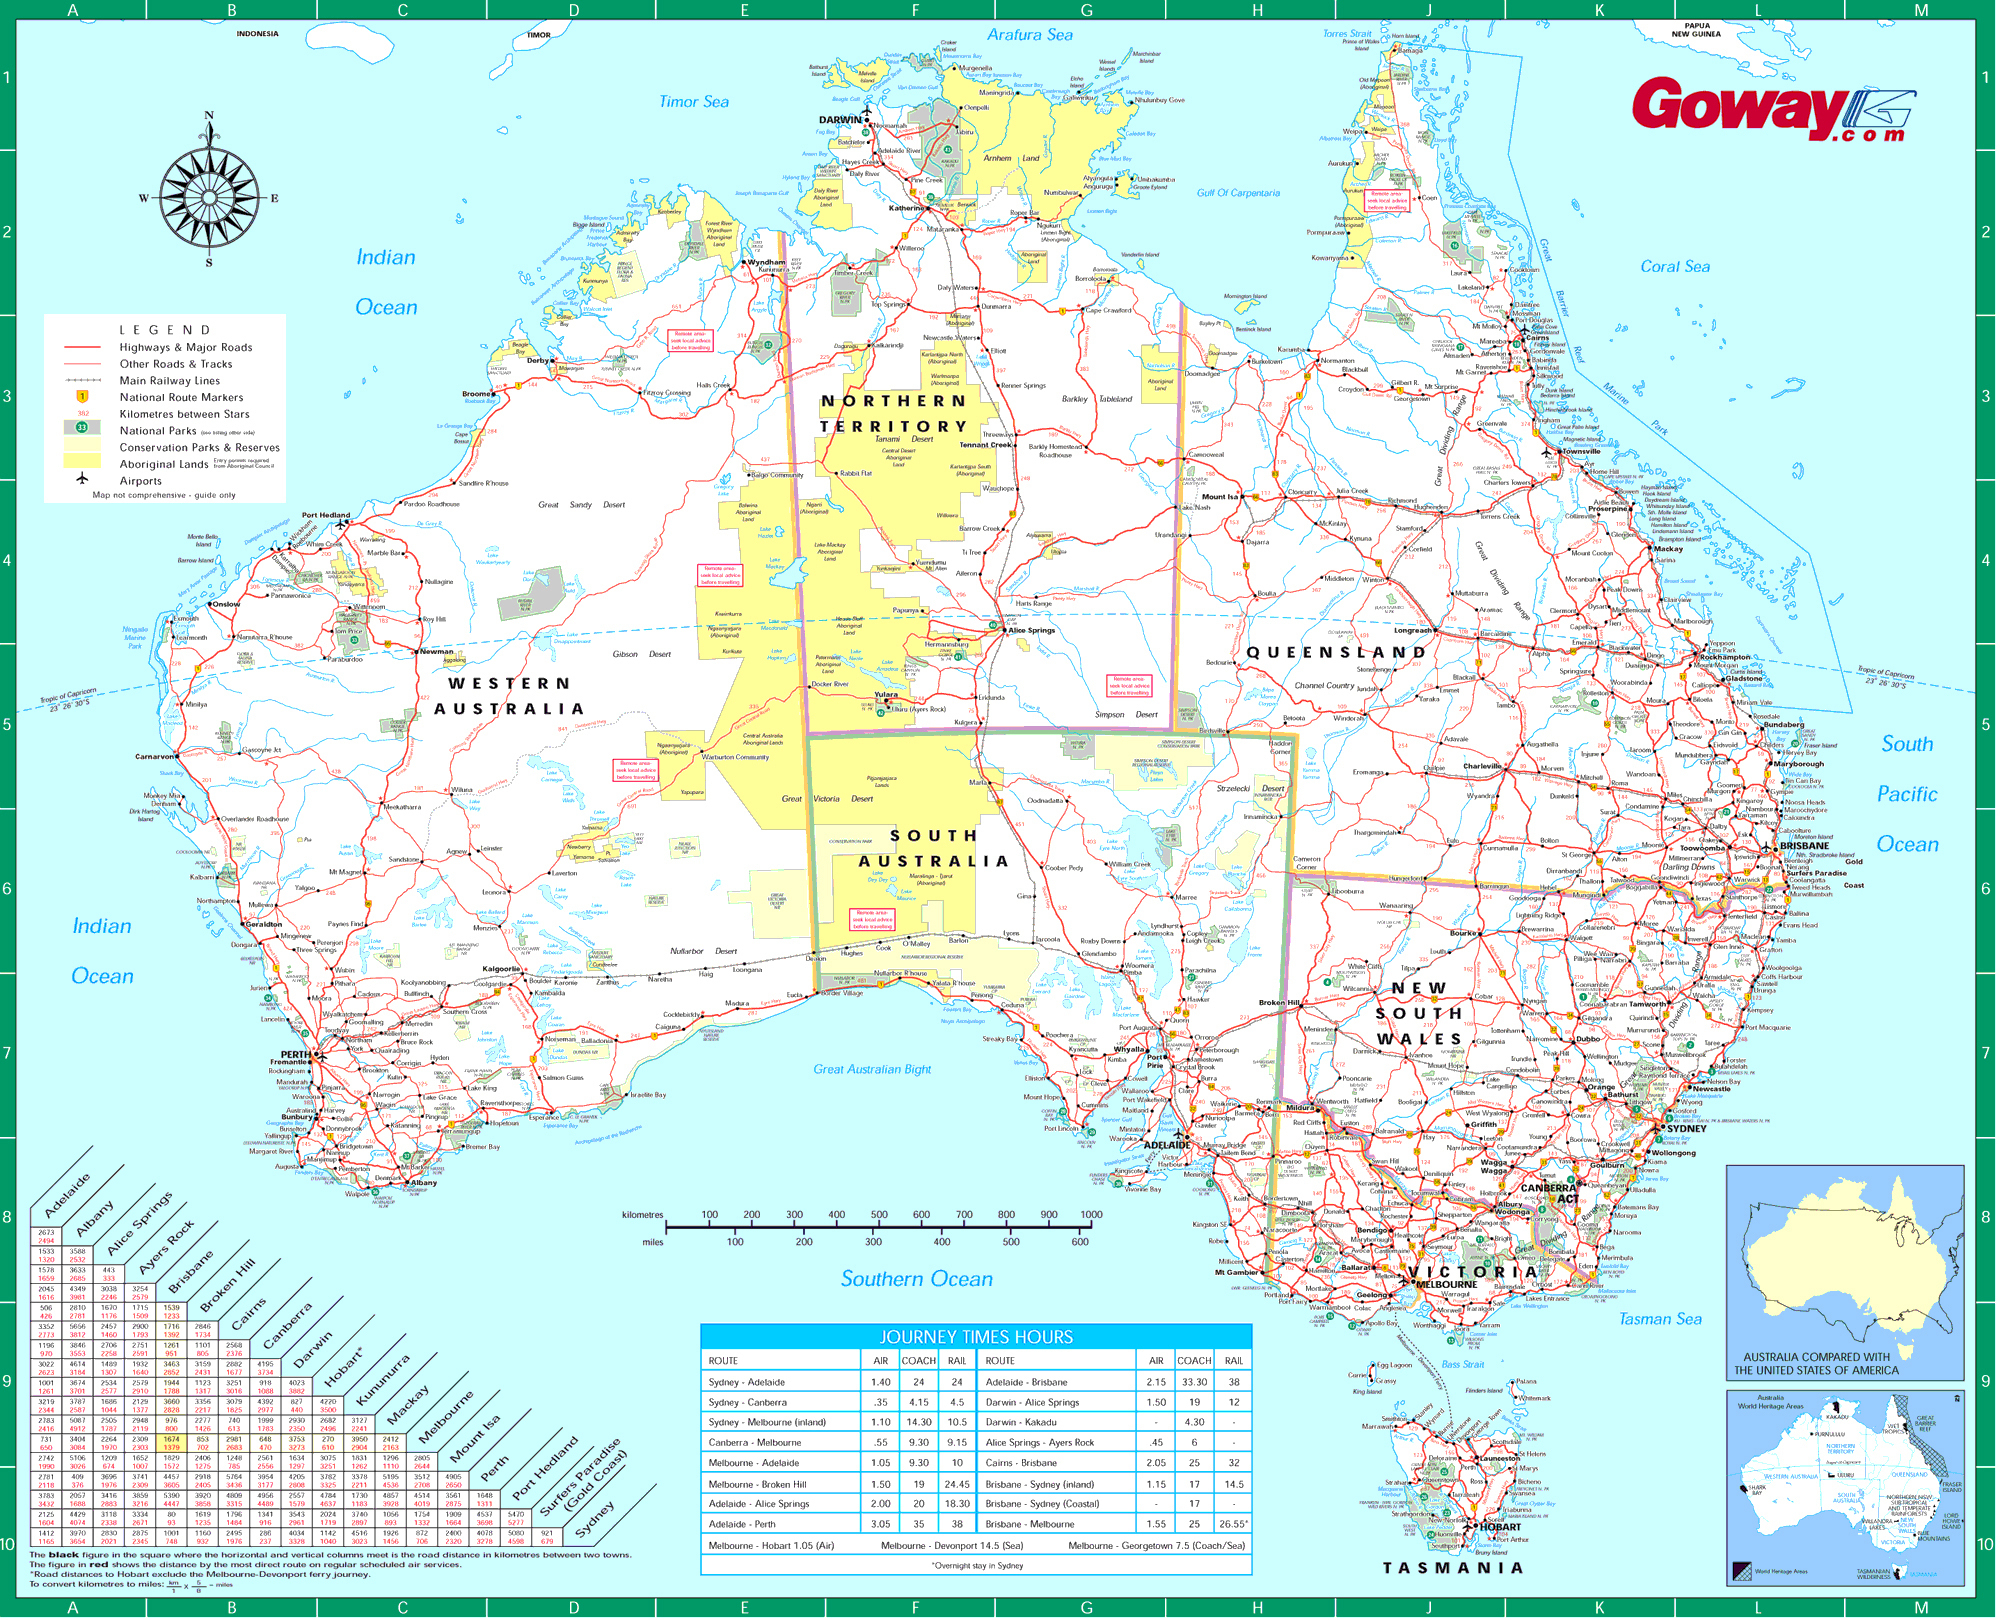 Free Road Maps Download Free Road Maps Australia | Travel Maps And - Free Printable Road Maps